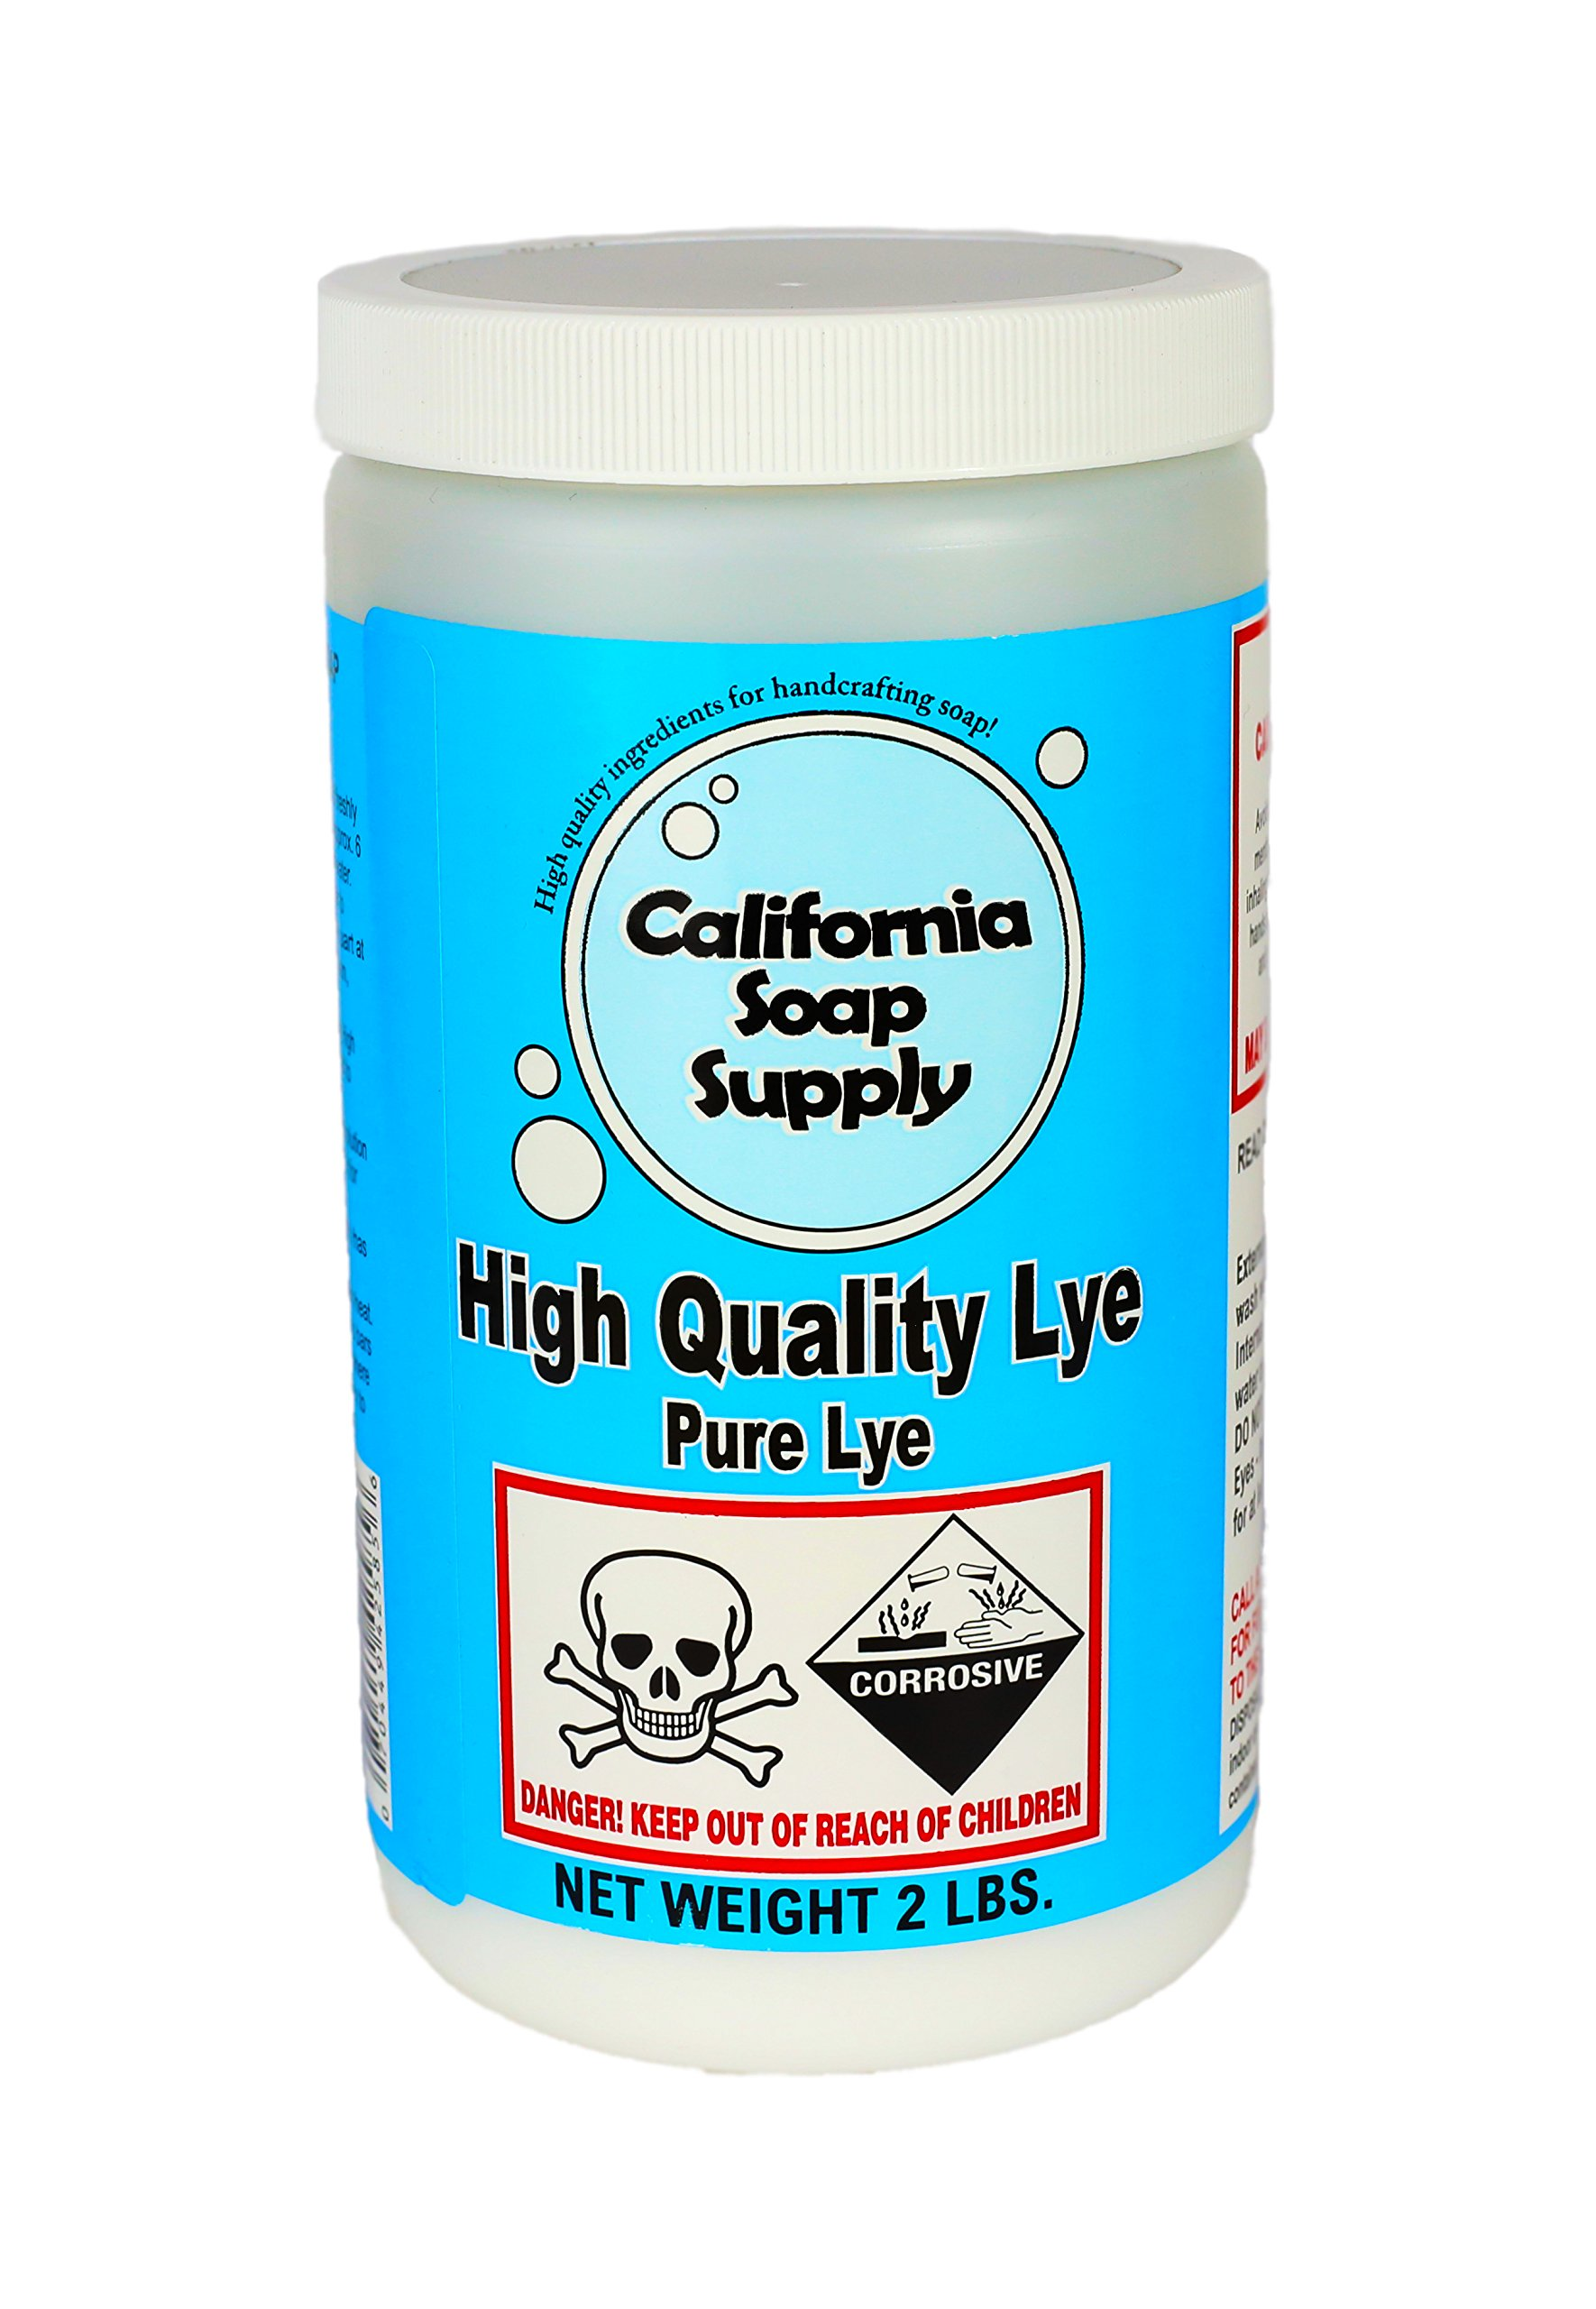 Pure Soap Making LYE, Sodium Hydroxide, 2LBS, Great for soapmaking, drain cleaning by California Soap Supply by California Soap Supply